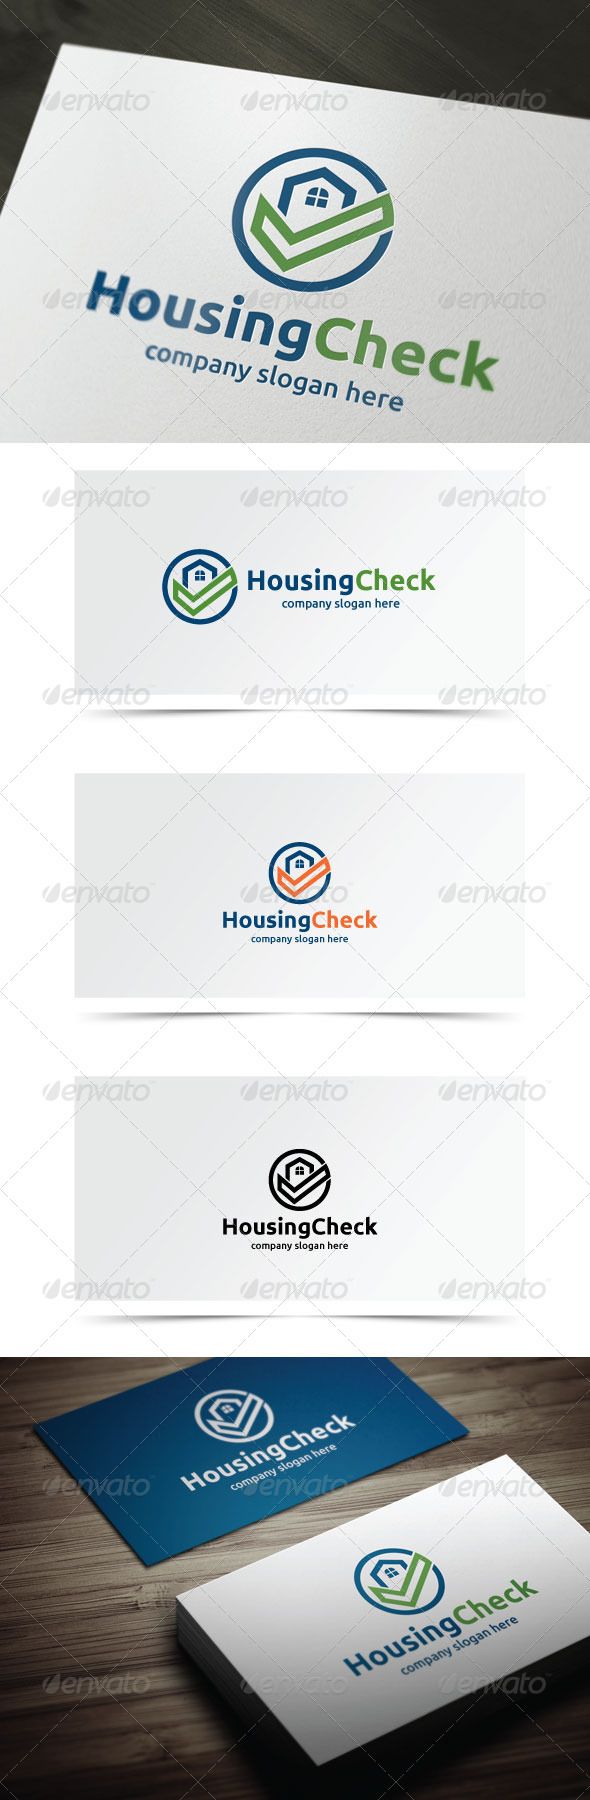 GraphicRiver Housing Check 7004552